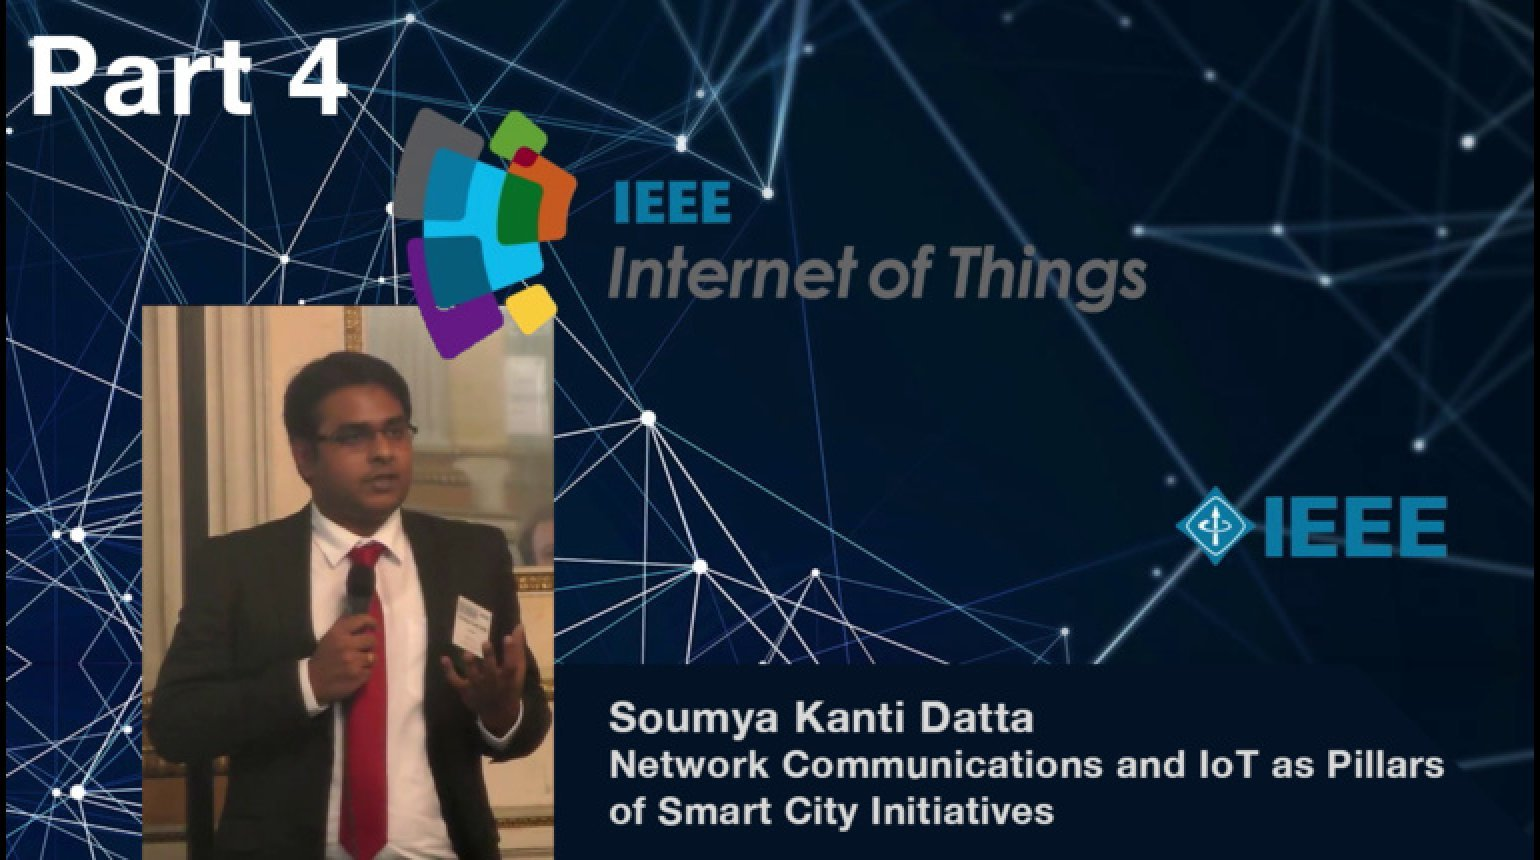 Tutorial on Network Communications and Internet of Things as Pillars of Smart City Initiatives - Soumya Kanti Datta, IEEE WF-IoT